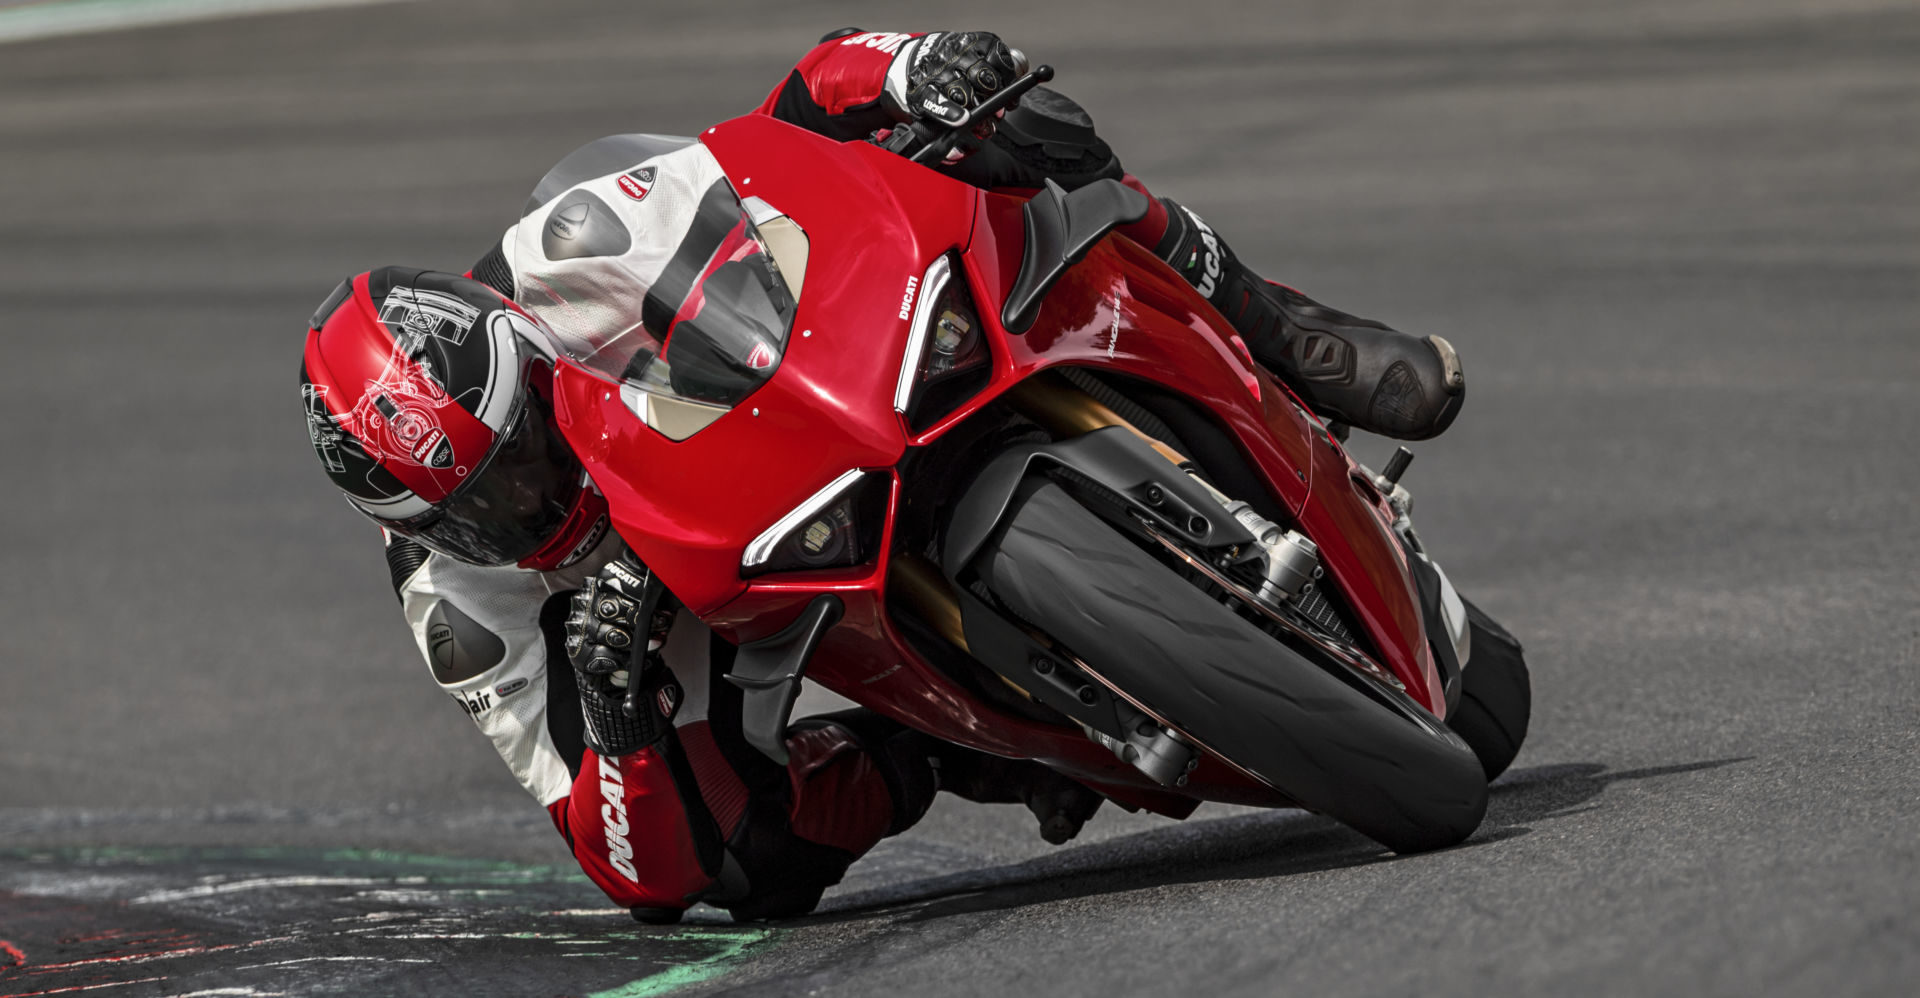 A 2020 Ducati Panigale V4 at speed. Photo courtesy of Ducati.